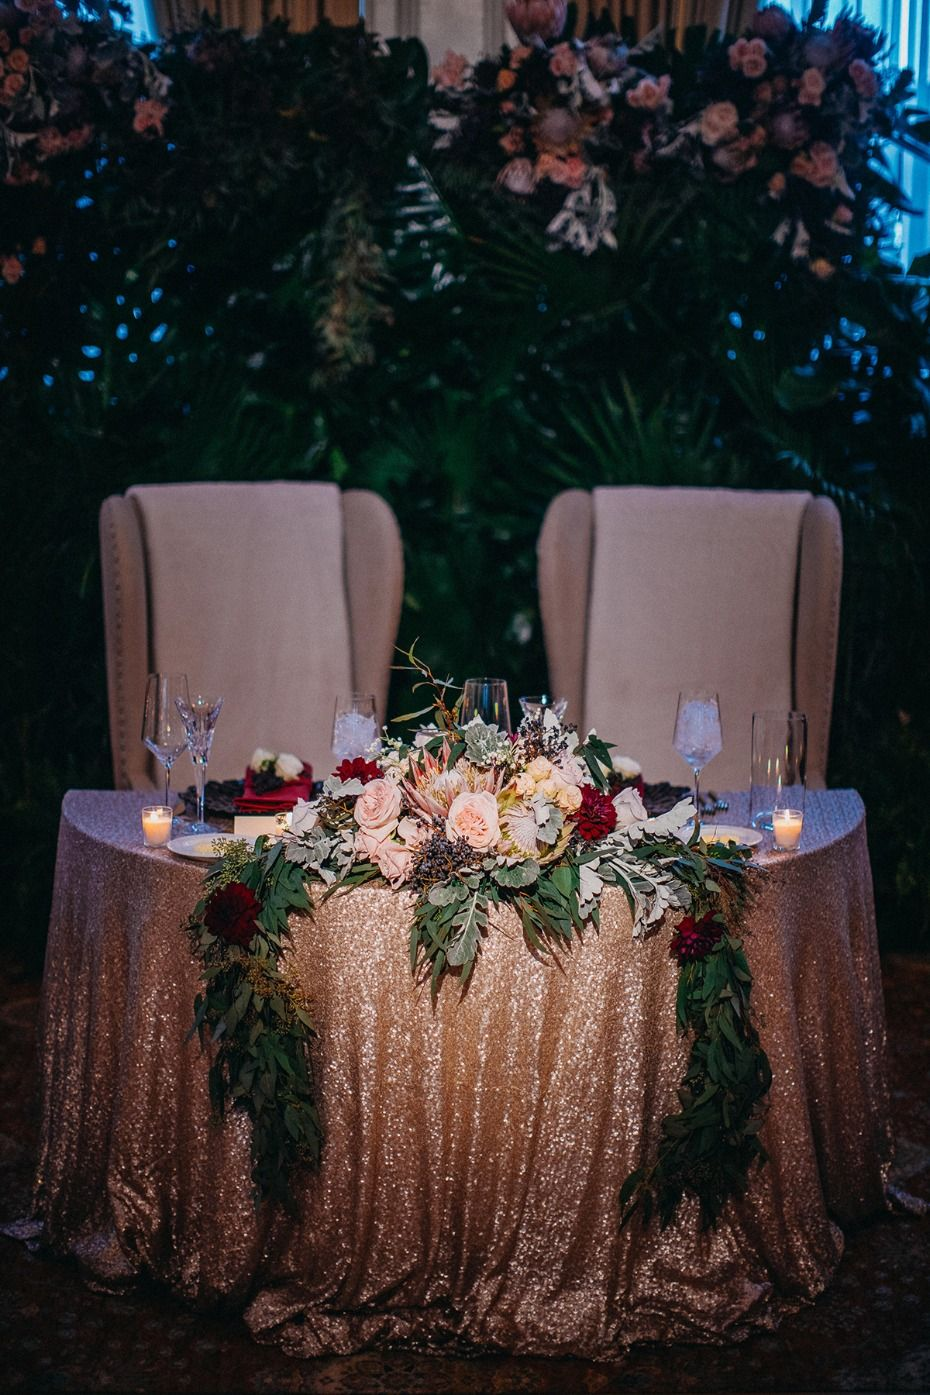 Dramatic Fall Inspired Sweetheart Table Goldsequin Sweethearttable Greenery Lushfls